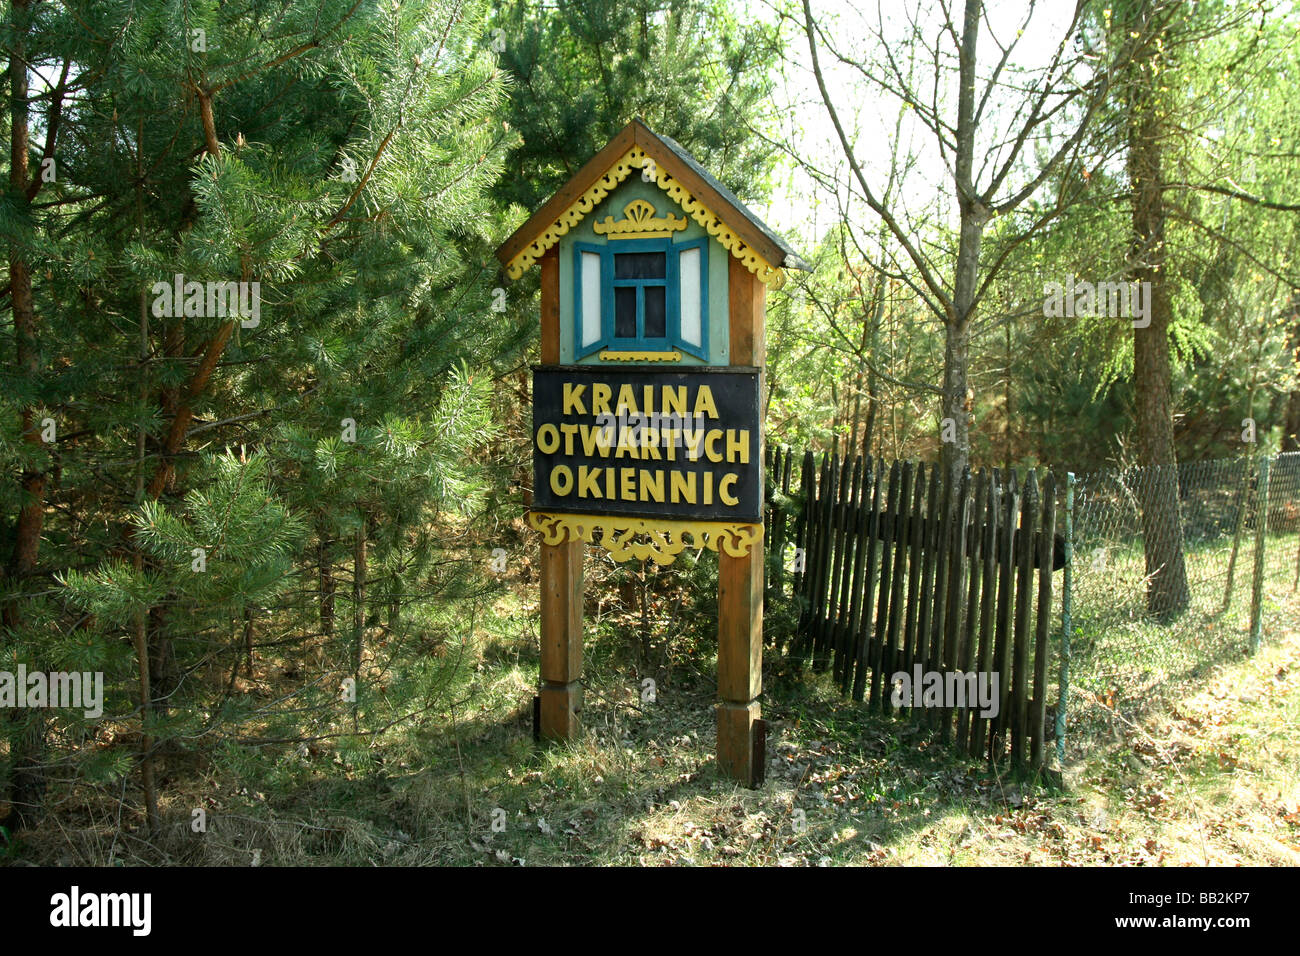 Kraina Otwartych Okiennic 'A country of open shutters' sign in Soce village Poland - Stock Image